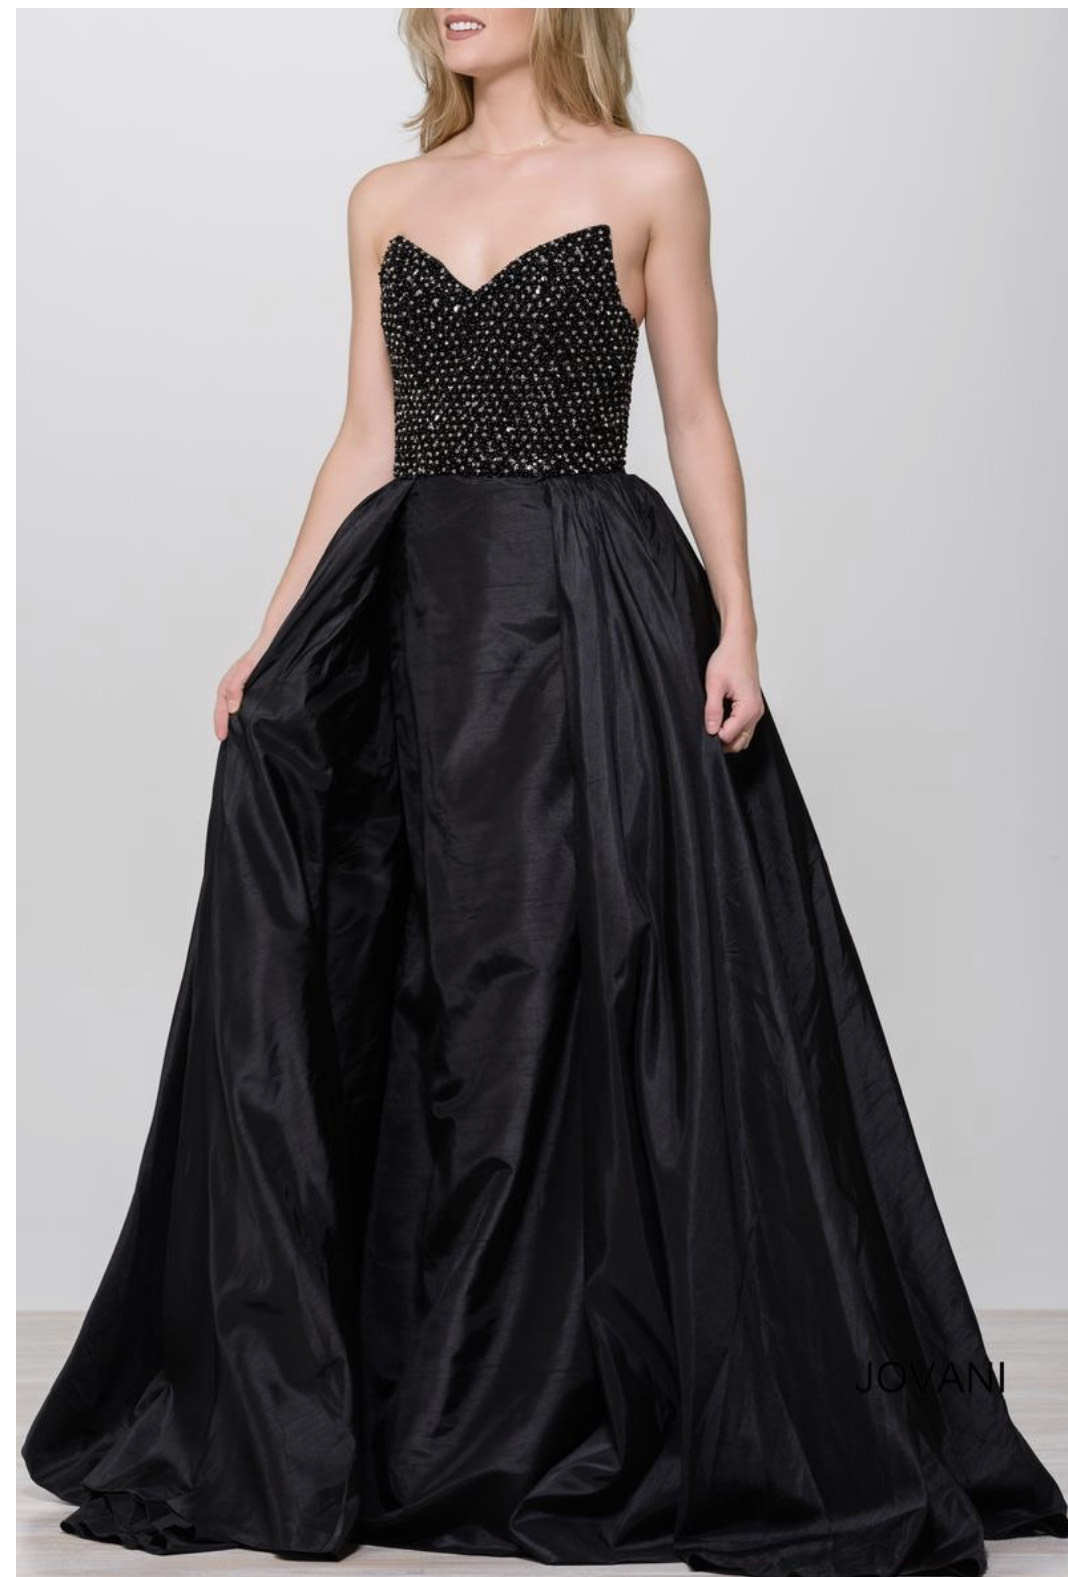 Jovani Black Size 0 Strapless Overskirt Sequin A-line Dress on Queenly